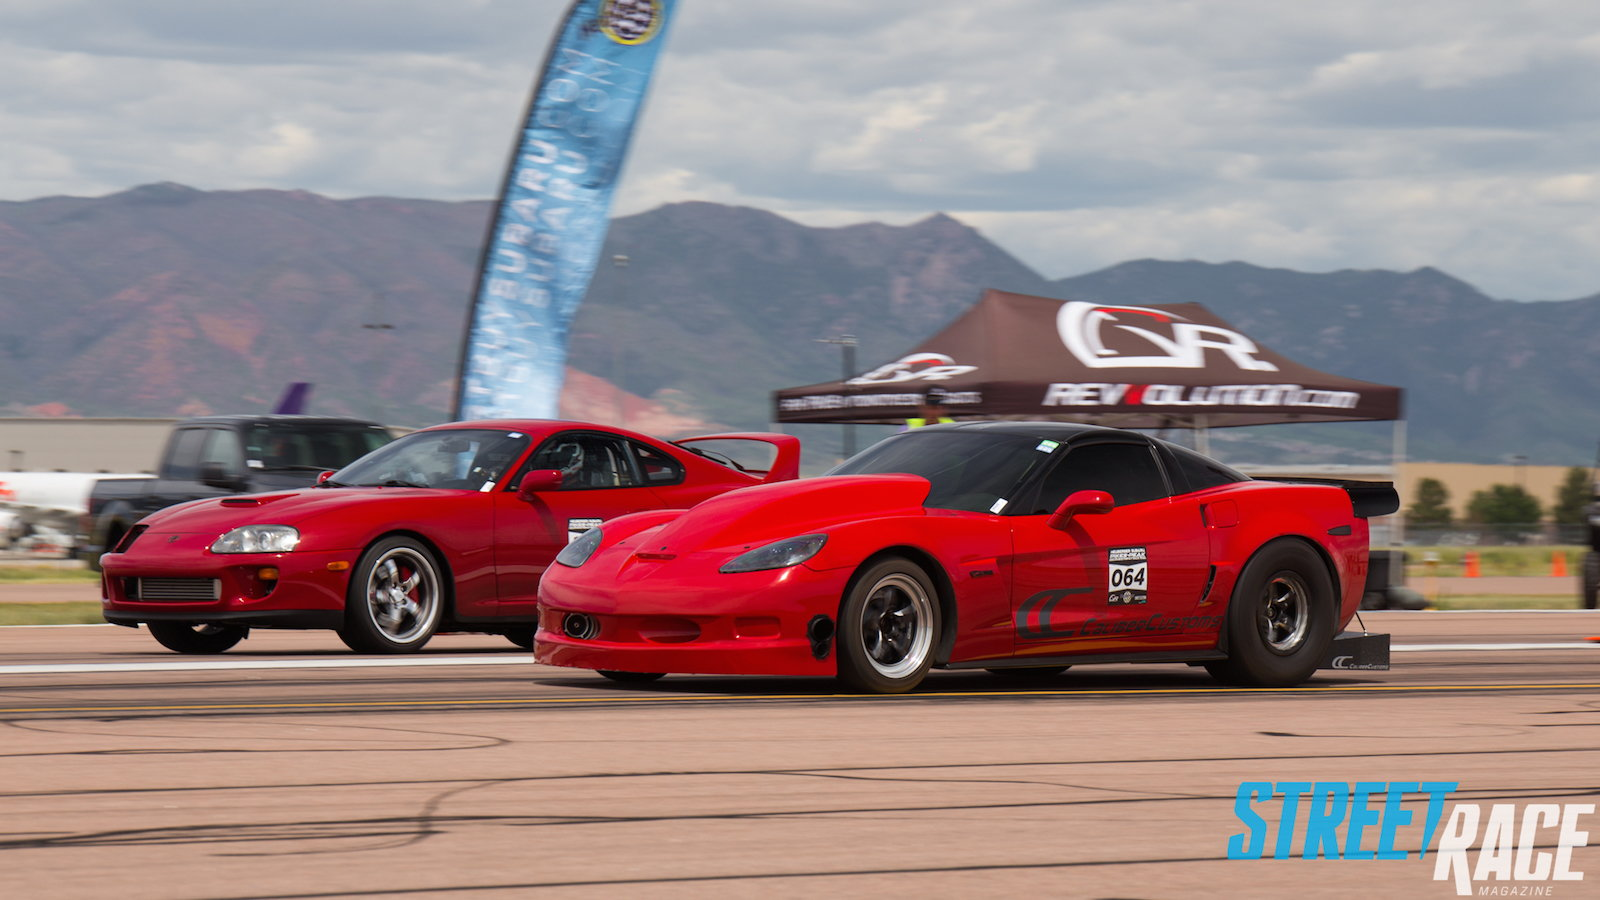 Corvette Hits 236 MPH in Half Mile Race